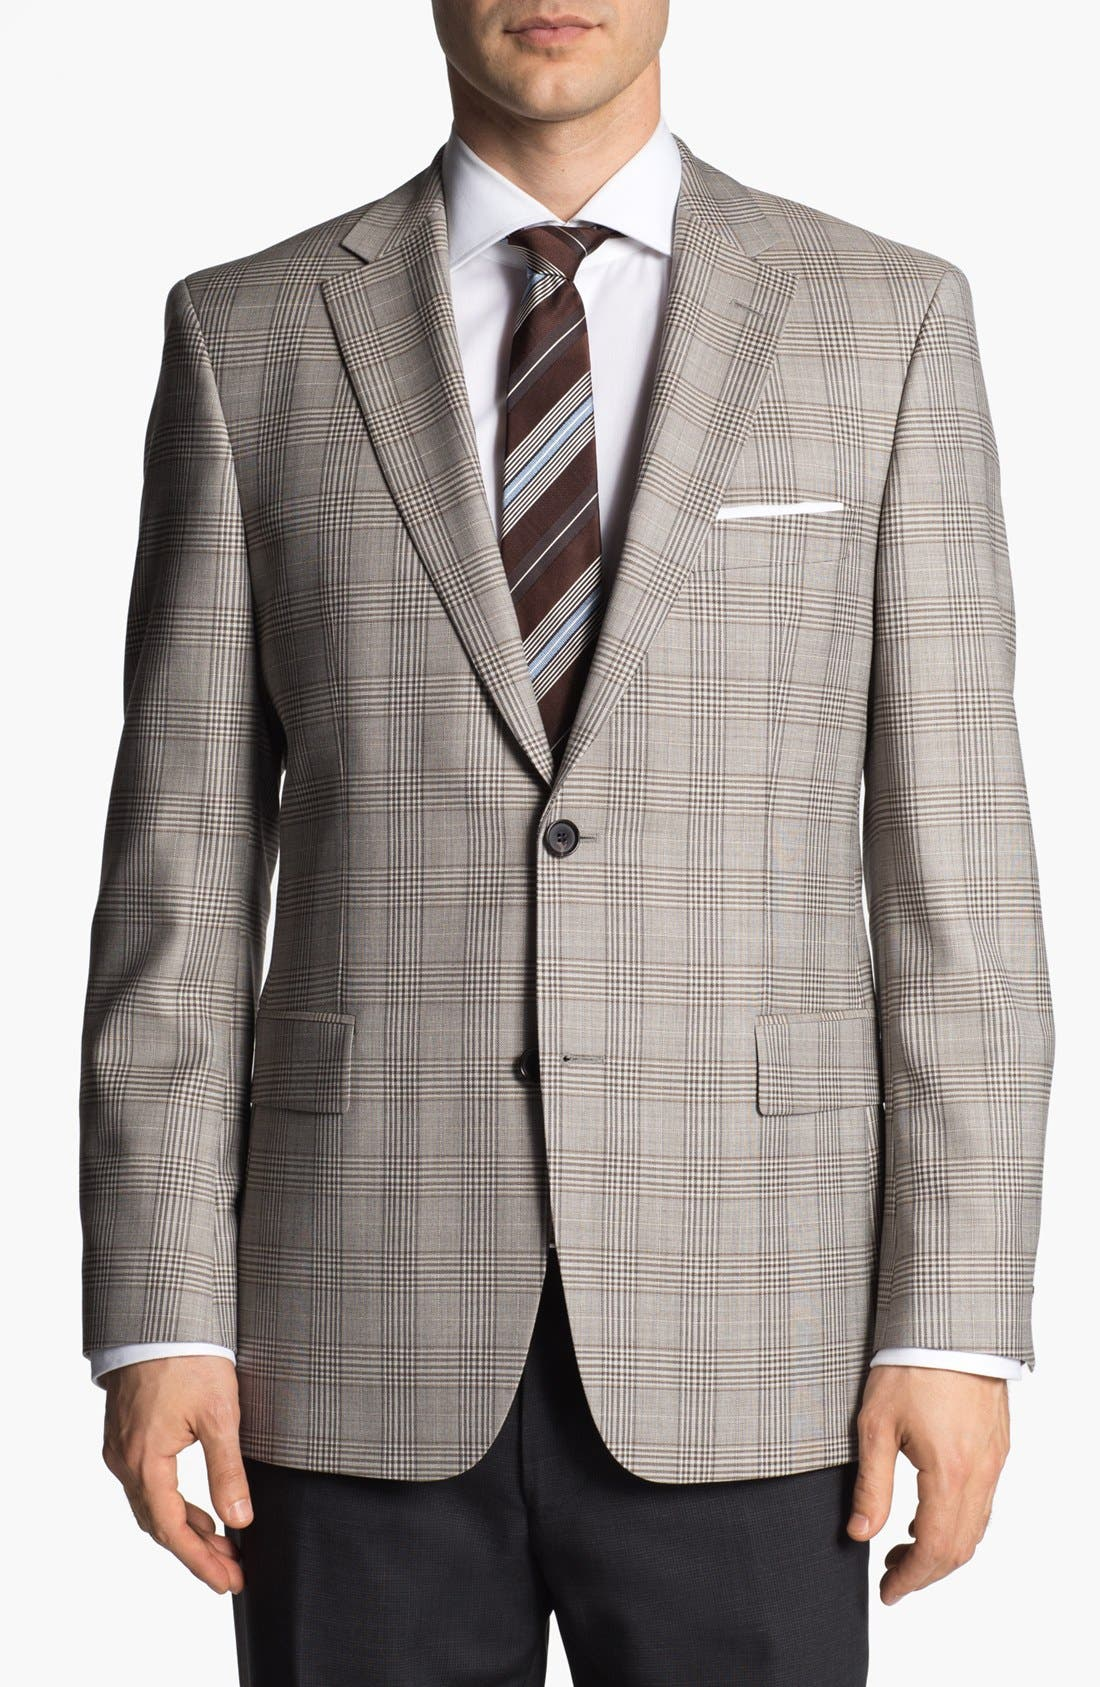 Main Image - BOSS HUGO BOSS 'Pasini' Glen Plaid Sportcoat